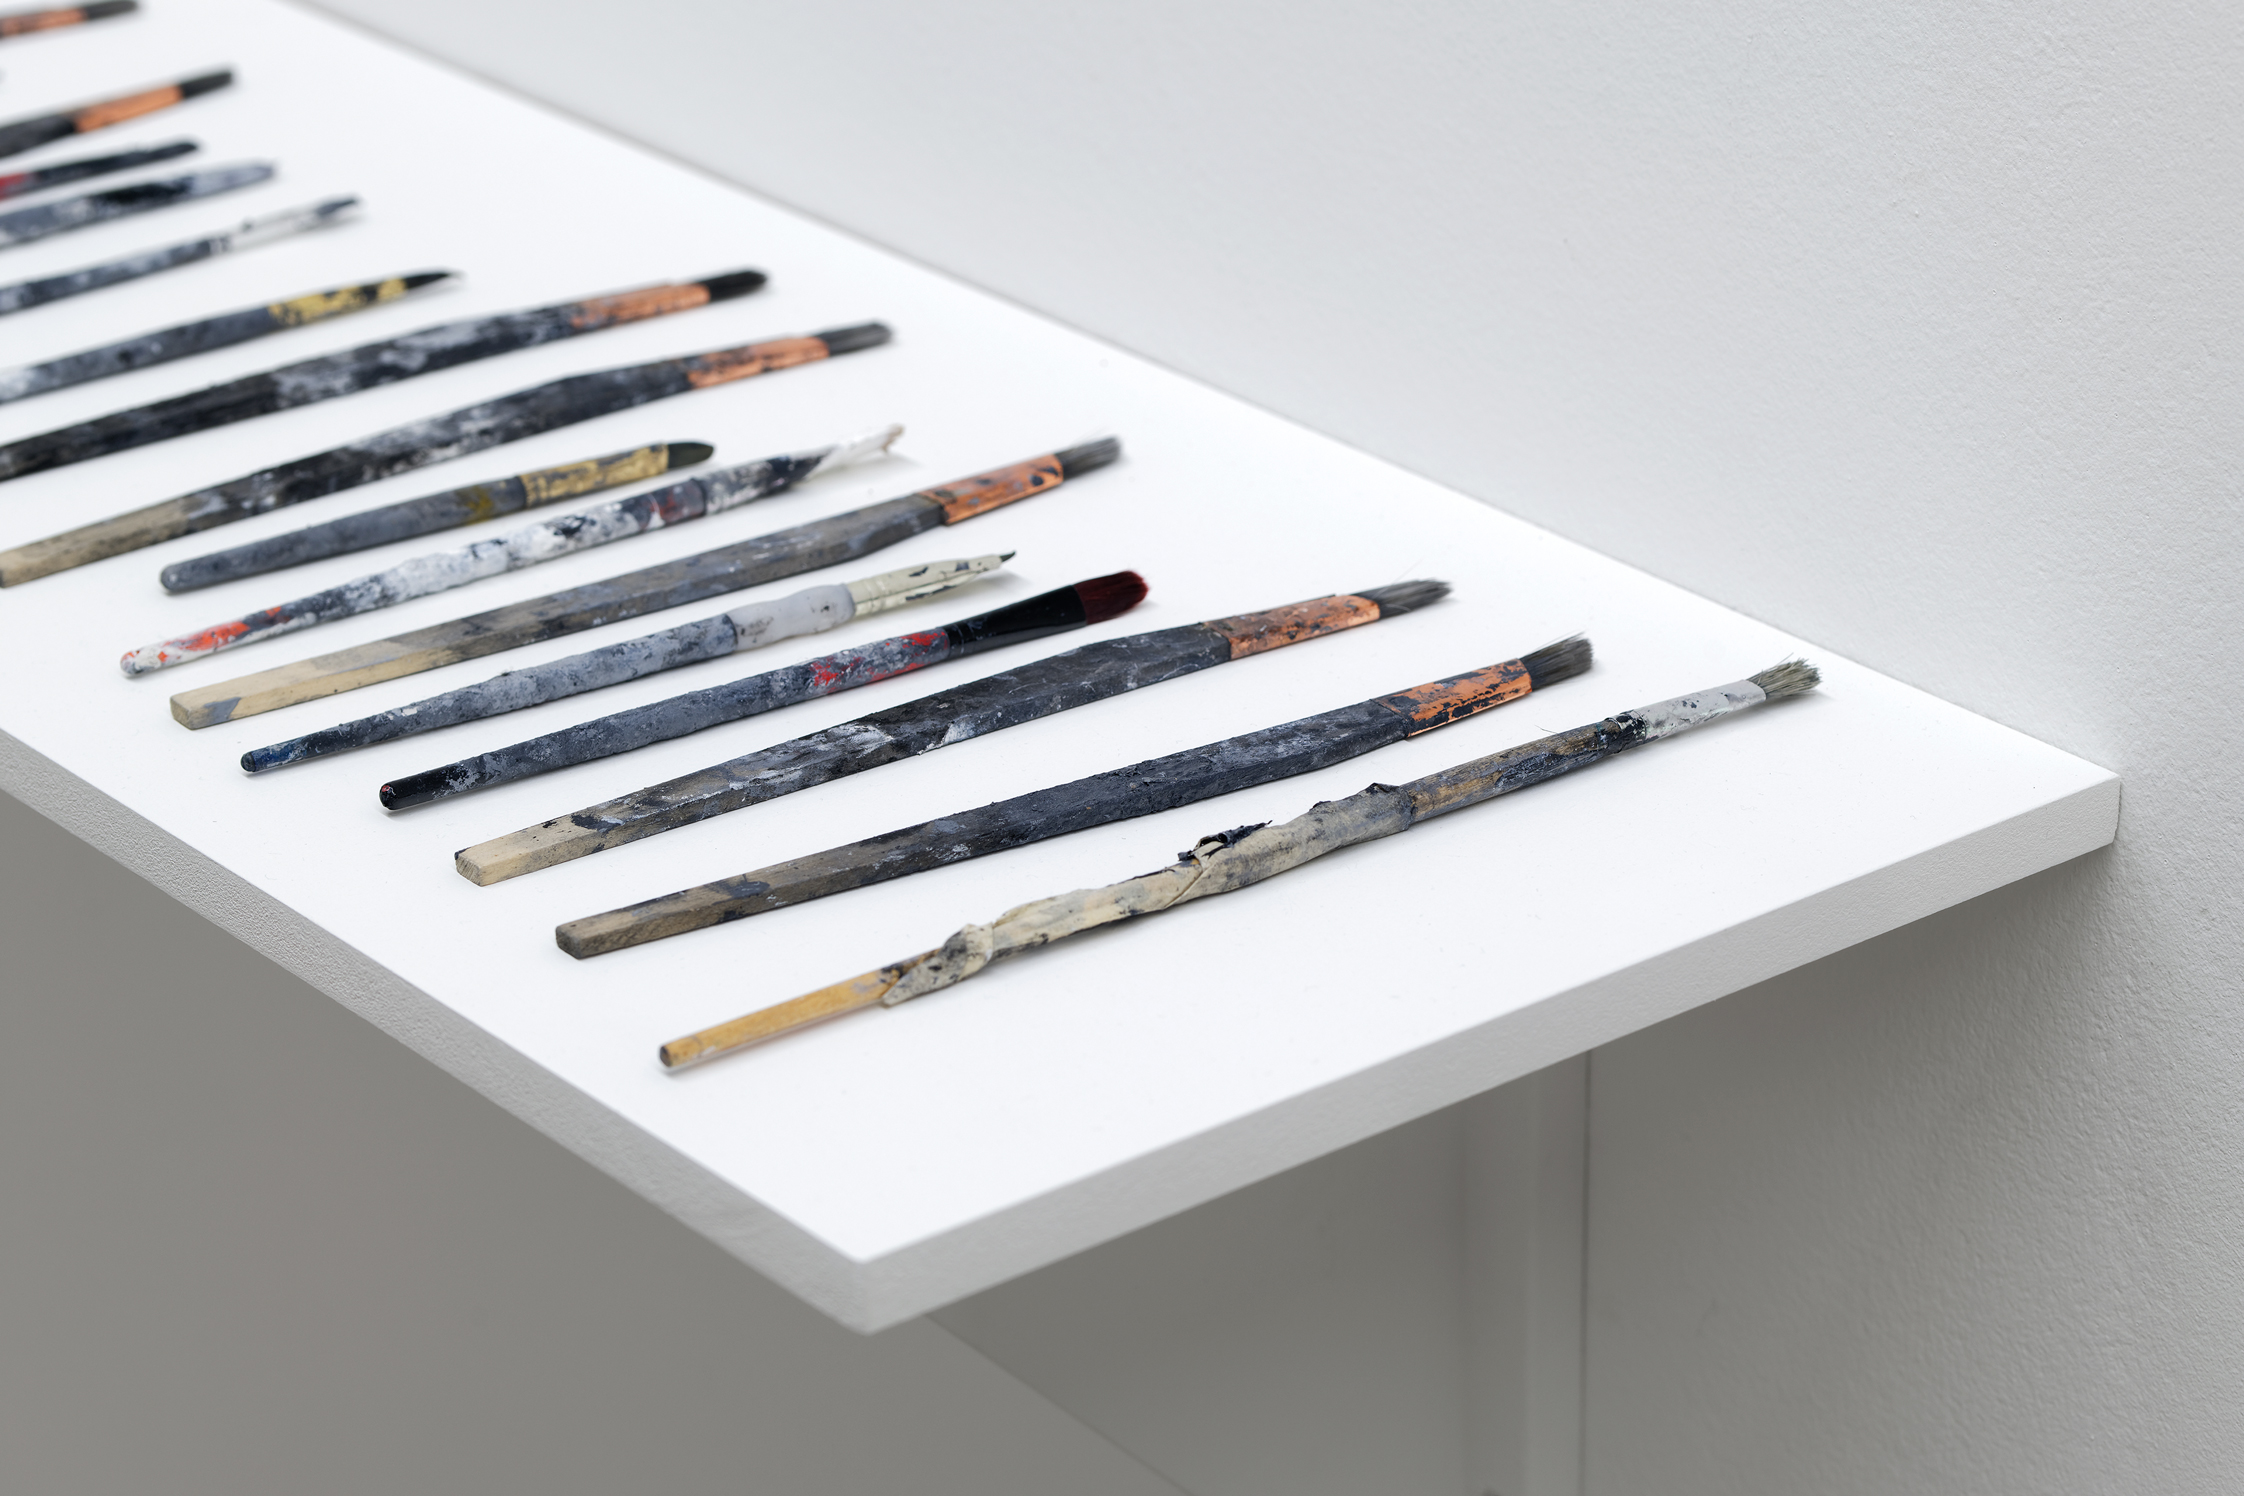 Clare Strand, Paint Brushes, 2018, collection du Musée national d'art  moderne / Centre de création industrielle, Paris